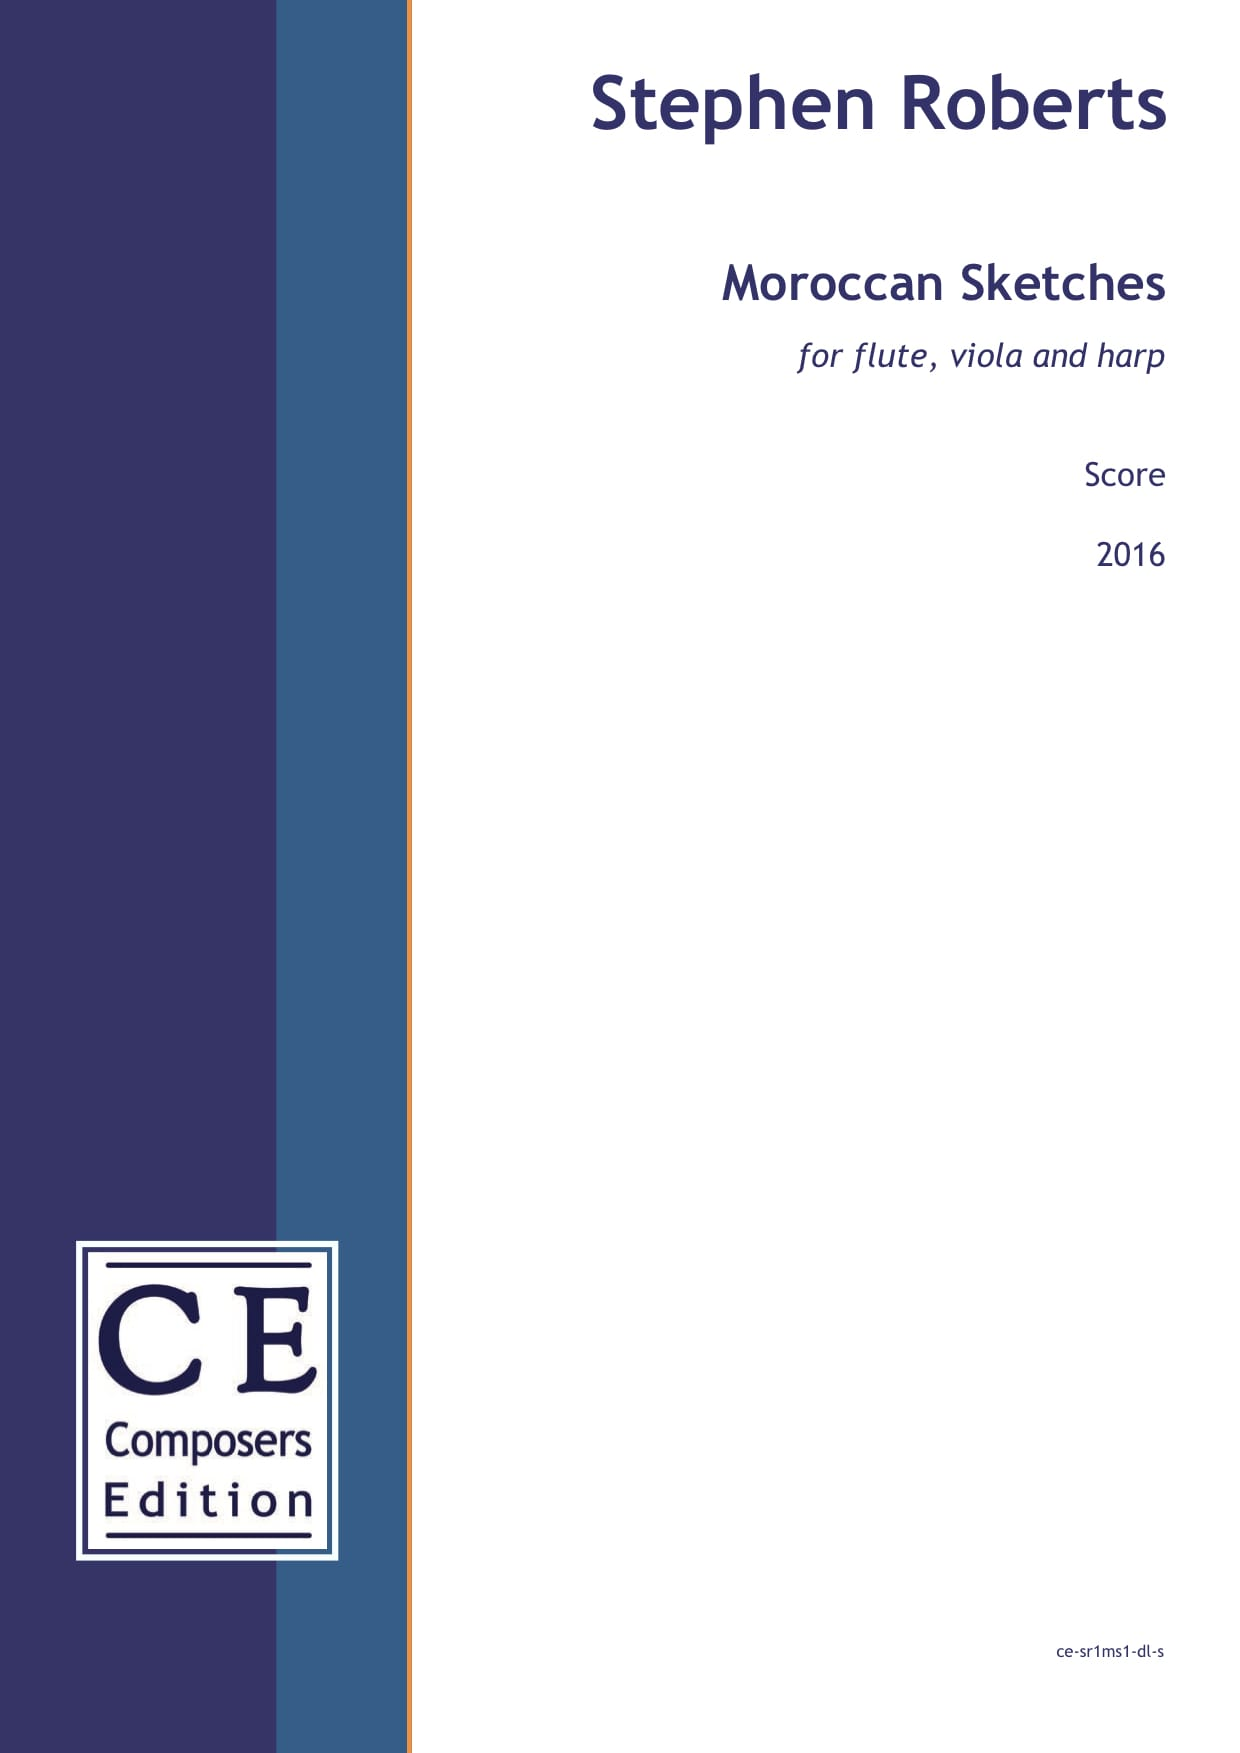 Stephen Roberts: Moroccan Sketches for flute, viola and harp